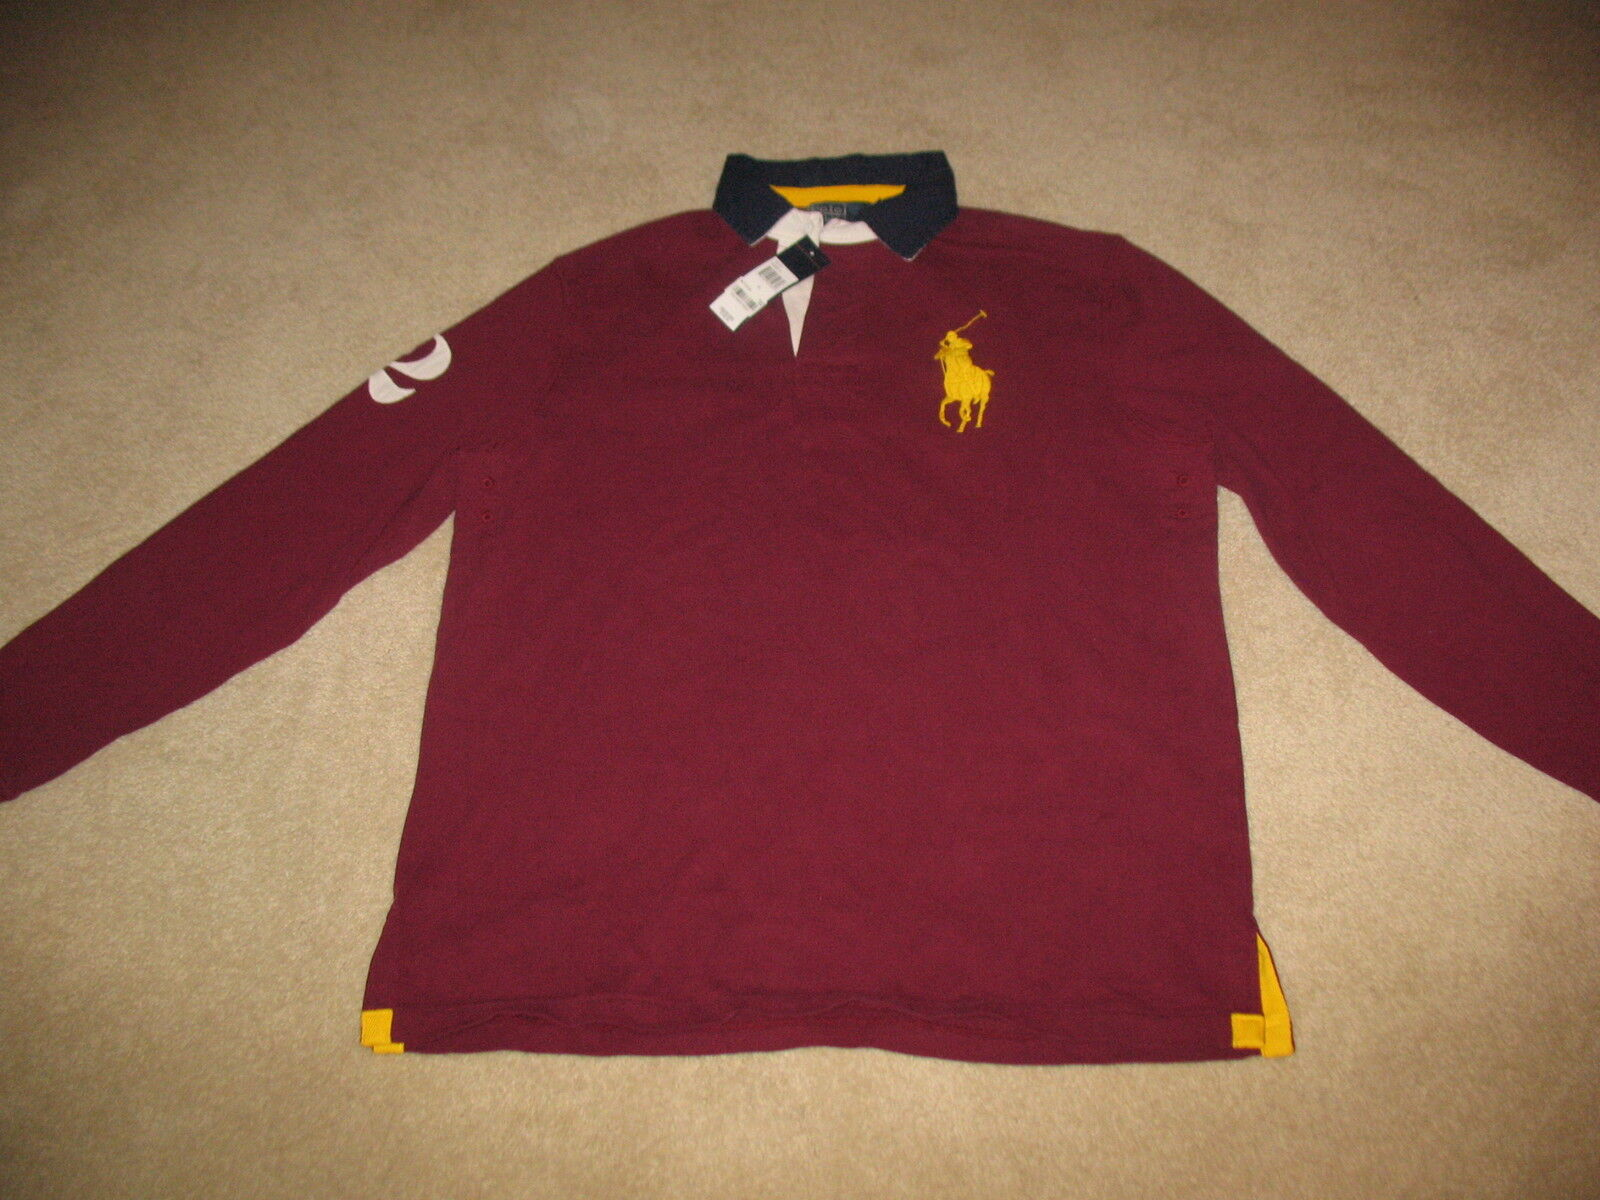 NWT Polo Ralph Lauren Men's Rugby T Shirt Small Maroon v